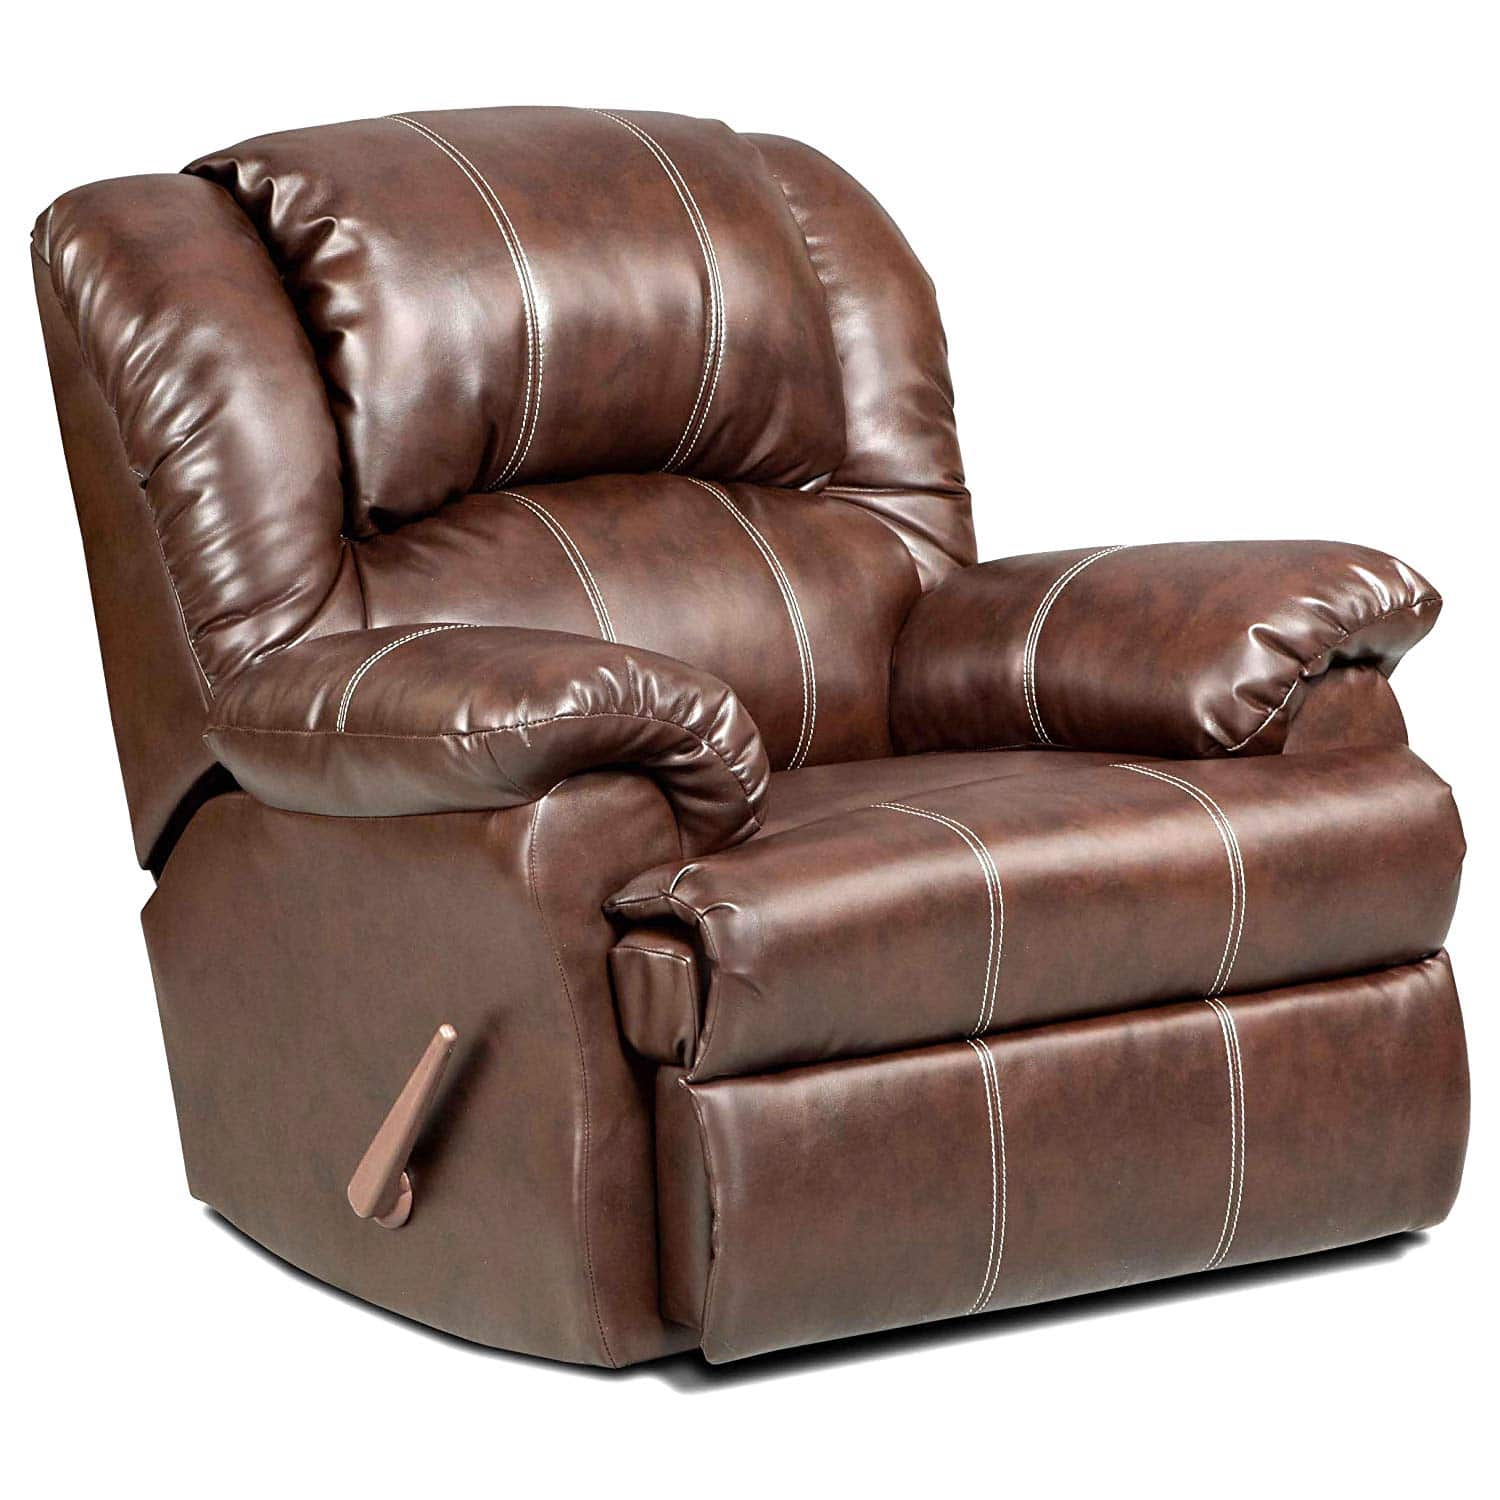 Best Rated Small Recliners Best Recliners Reviews And Comparisons Cuddly Home Advisors